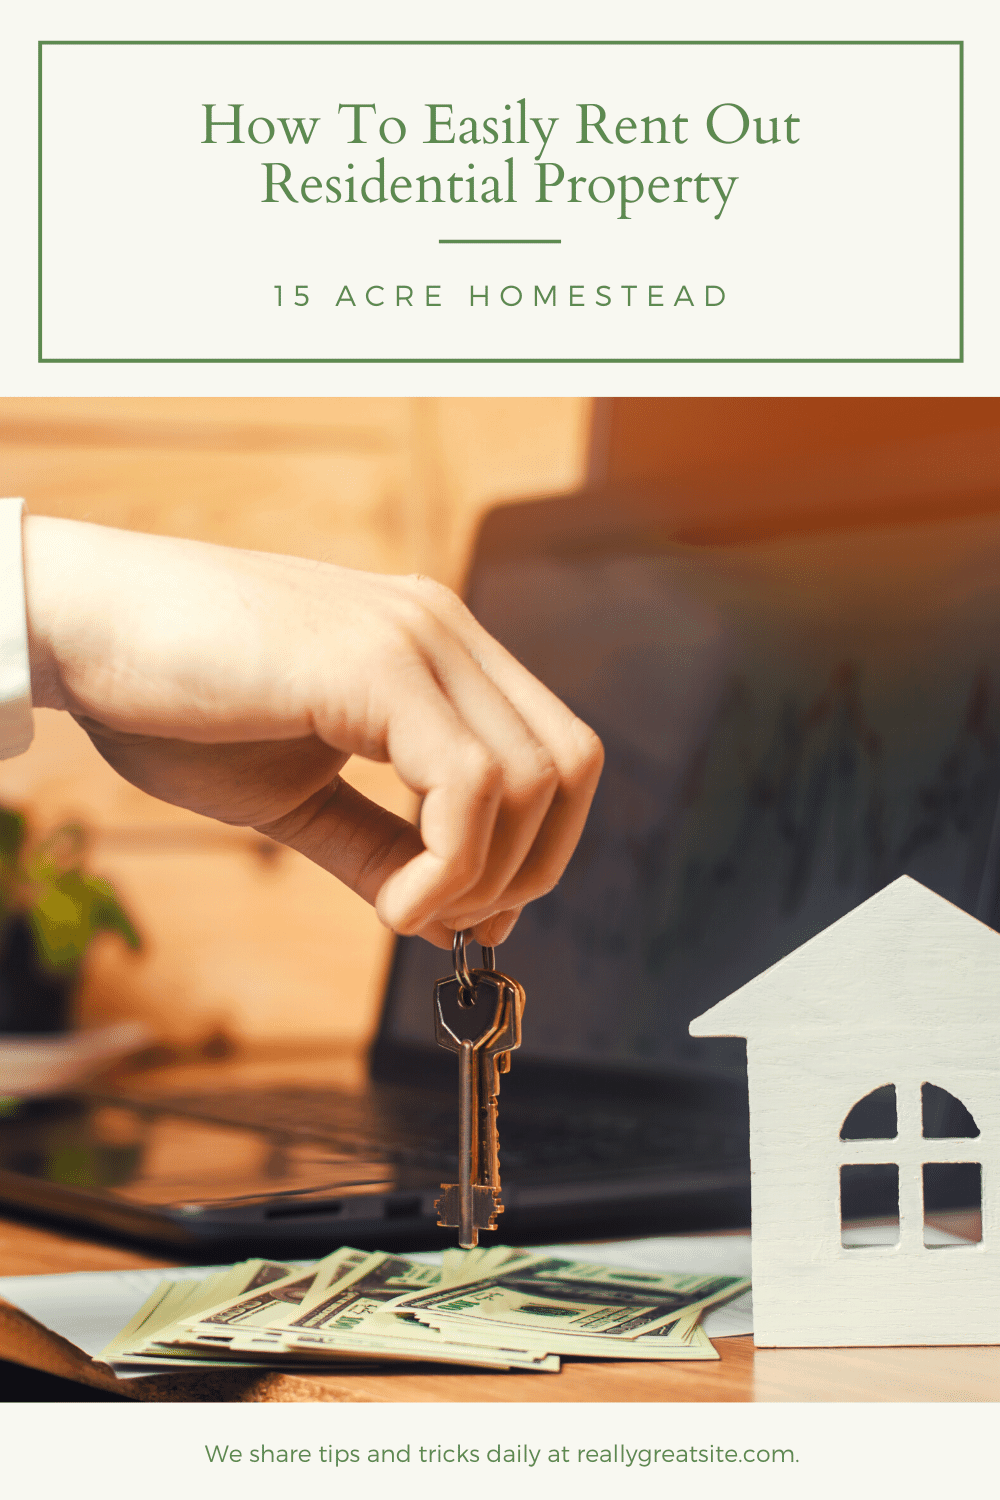 Looking to rent out your property anytime soon? Here are some great tips to get you started!